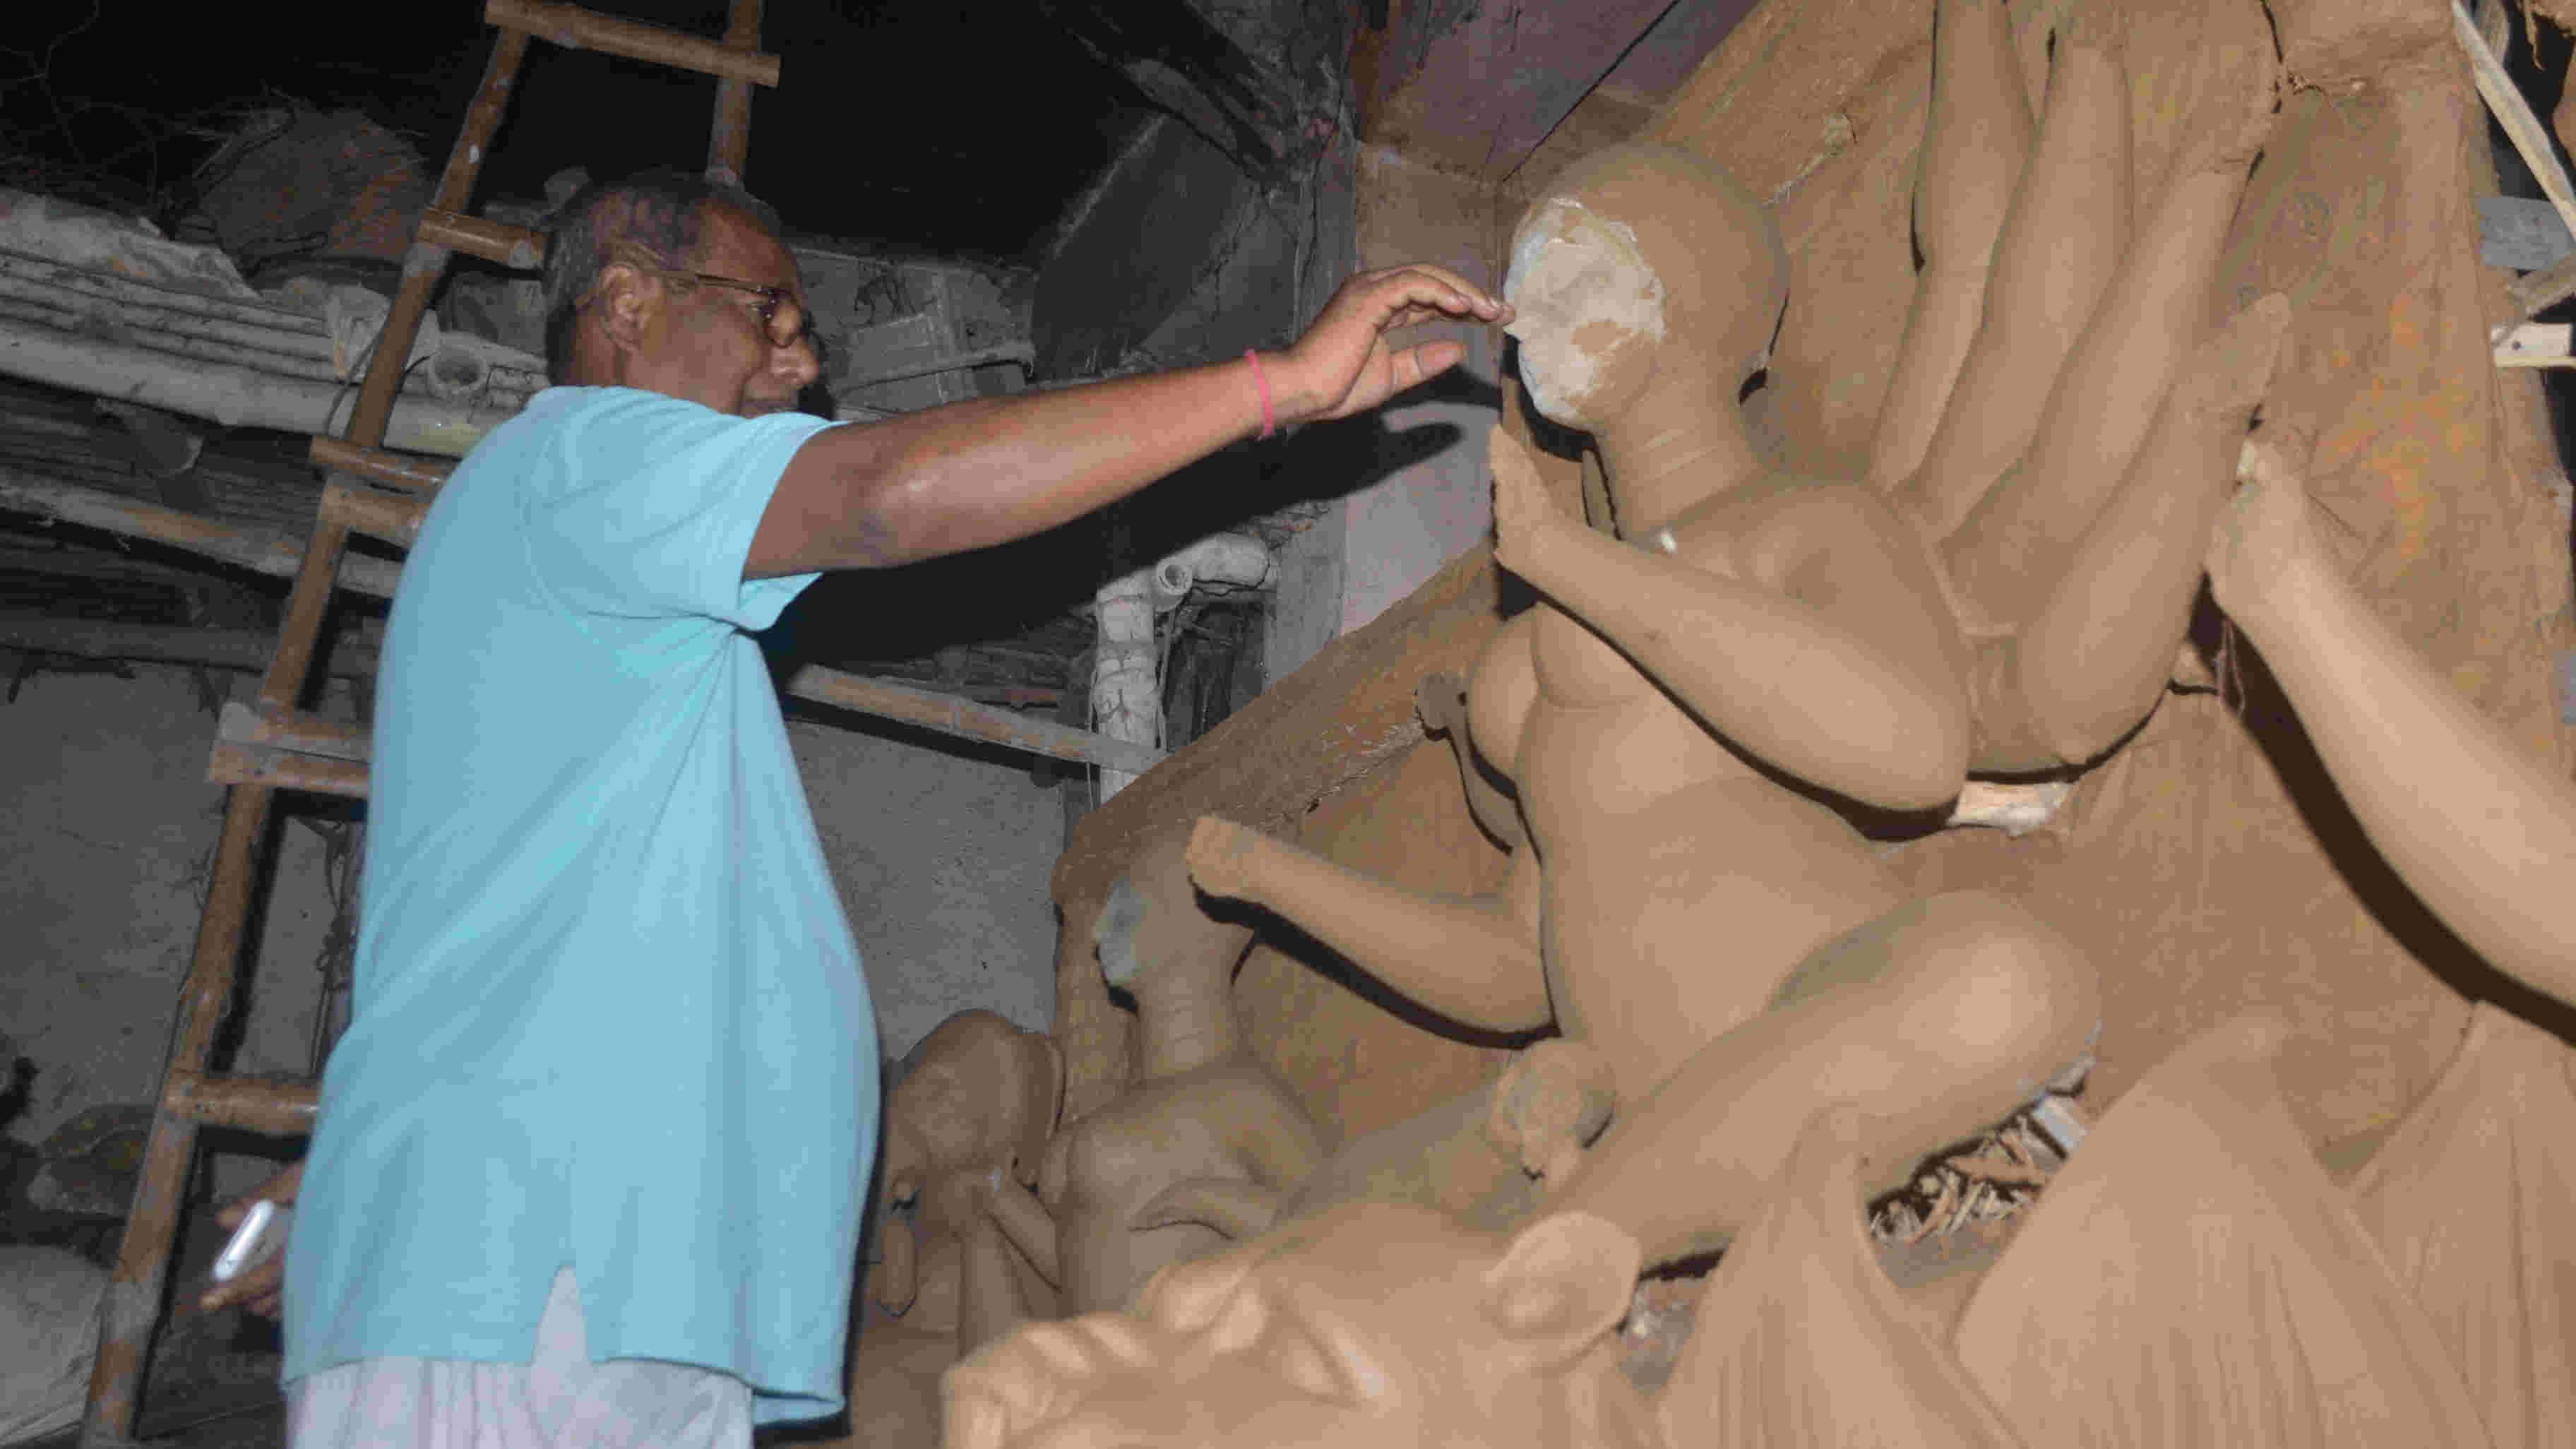 Artisans devastated by government cap on Durga idol height